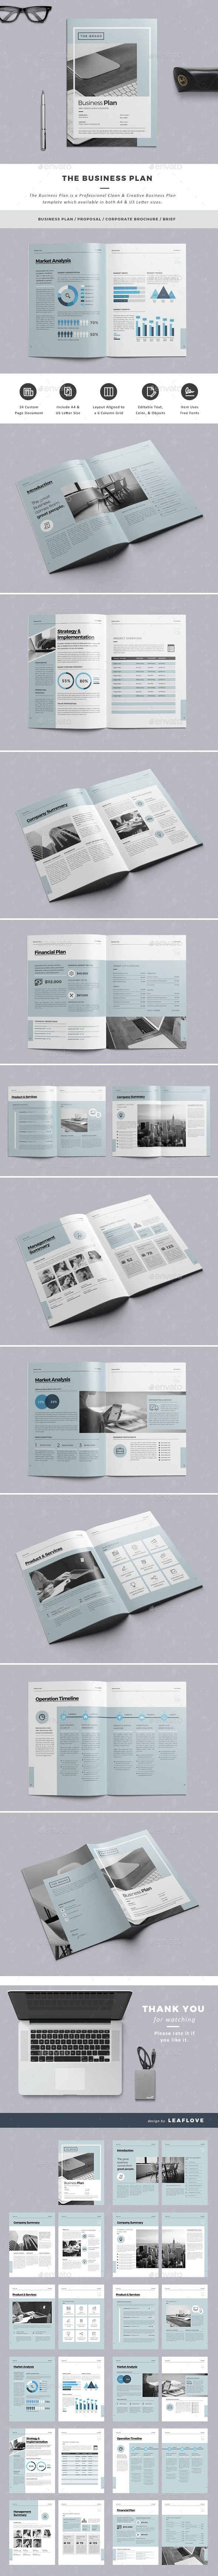 The Business Plan Template InDesign INDD. Download here: http://graphicriver.net/item/the-business-plan/14645700?ref=ksioks